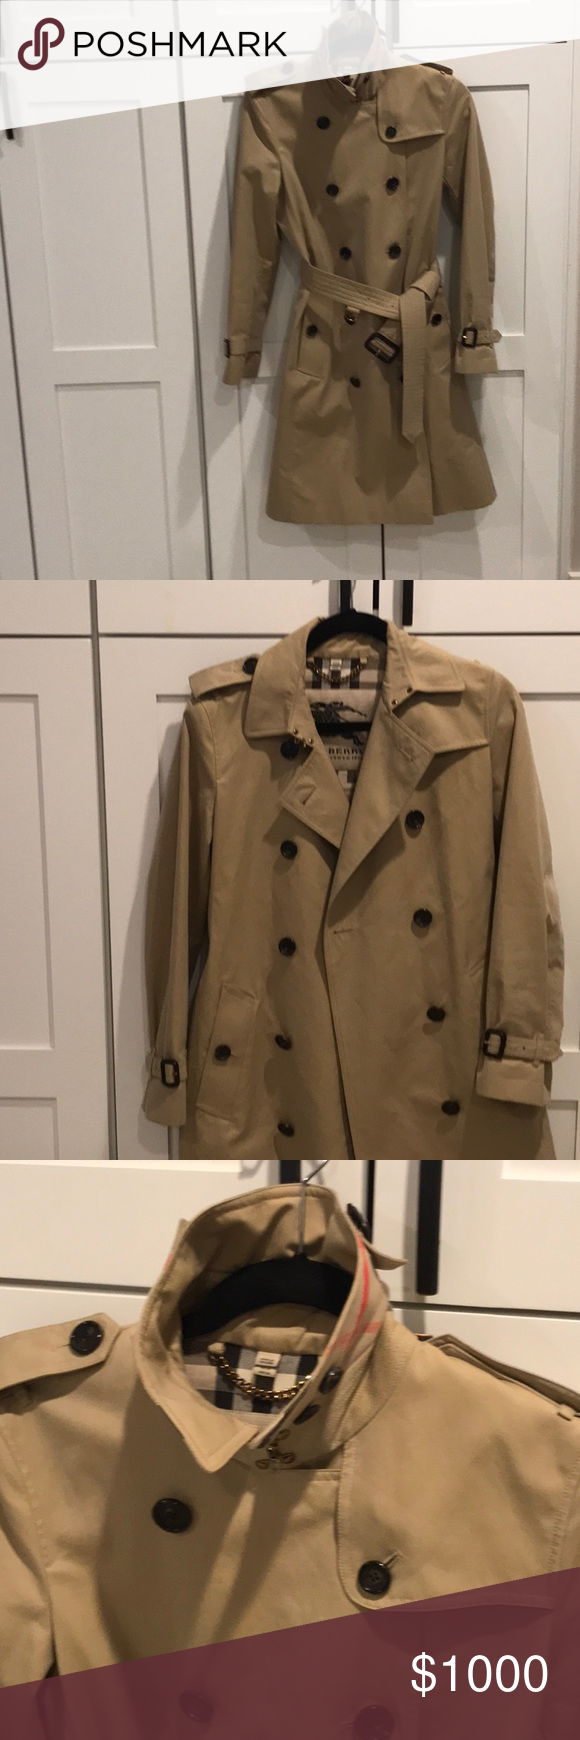 12c0f0ec6c5 Burberry - Kingston long trench coar Used but in very good condition. Size  6 (